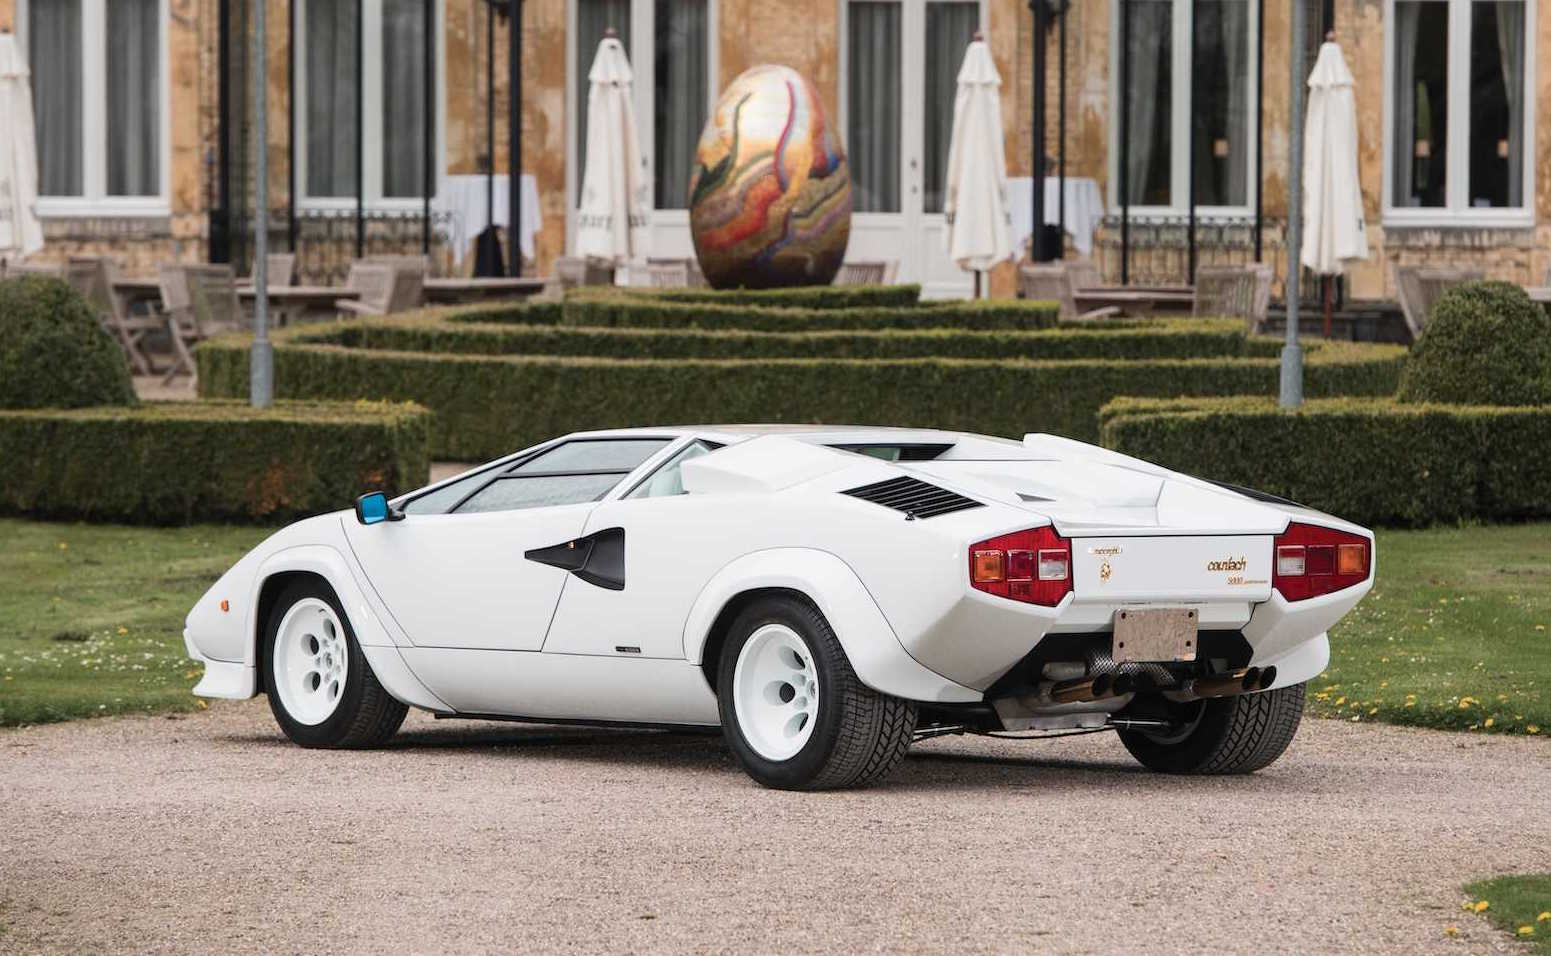 For Sale Gold Plated Lamborghini Countach Going Up For